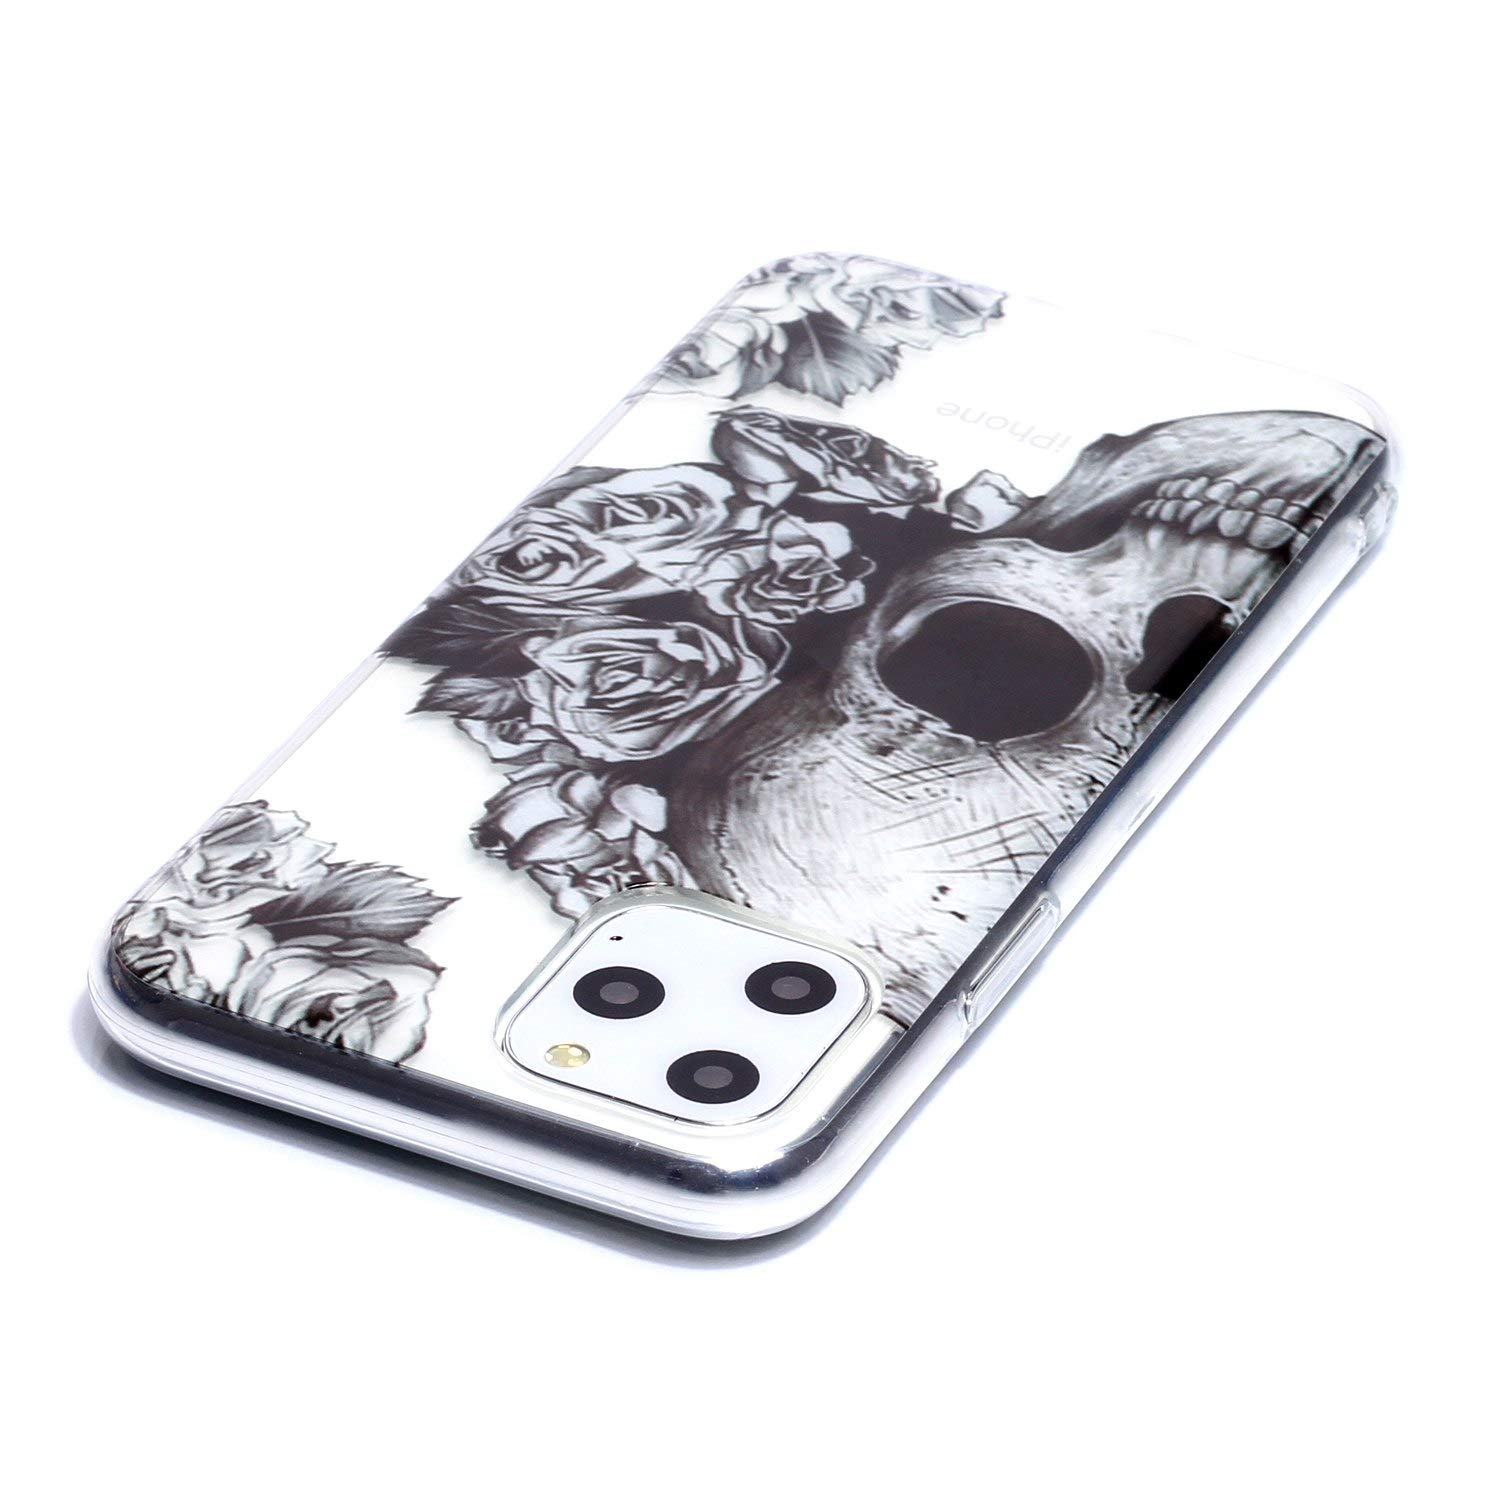 Reevermap iPhone 11 Pro Case Clear Soft Silicone Phone Case Slim Fit Flexible Lightweight Shockproof TPU Rubber Bumper Cover for iPhone 11 Pro